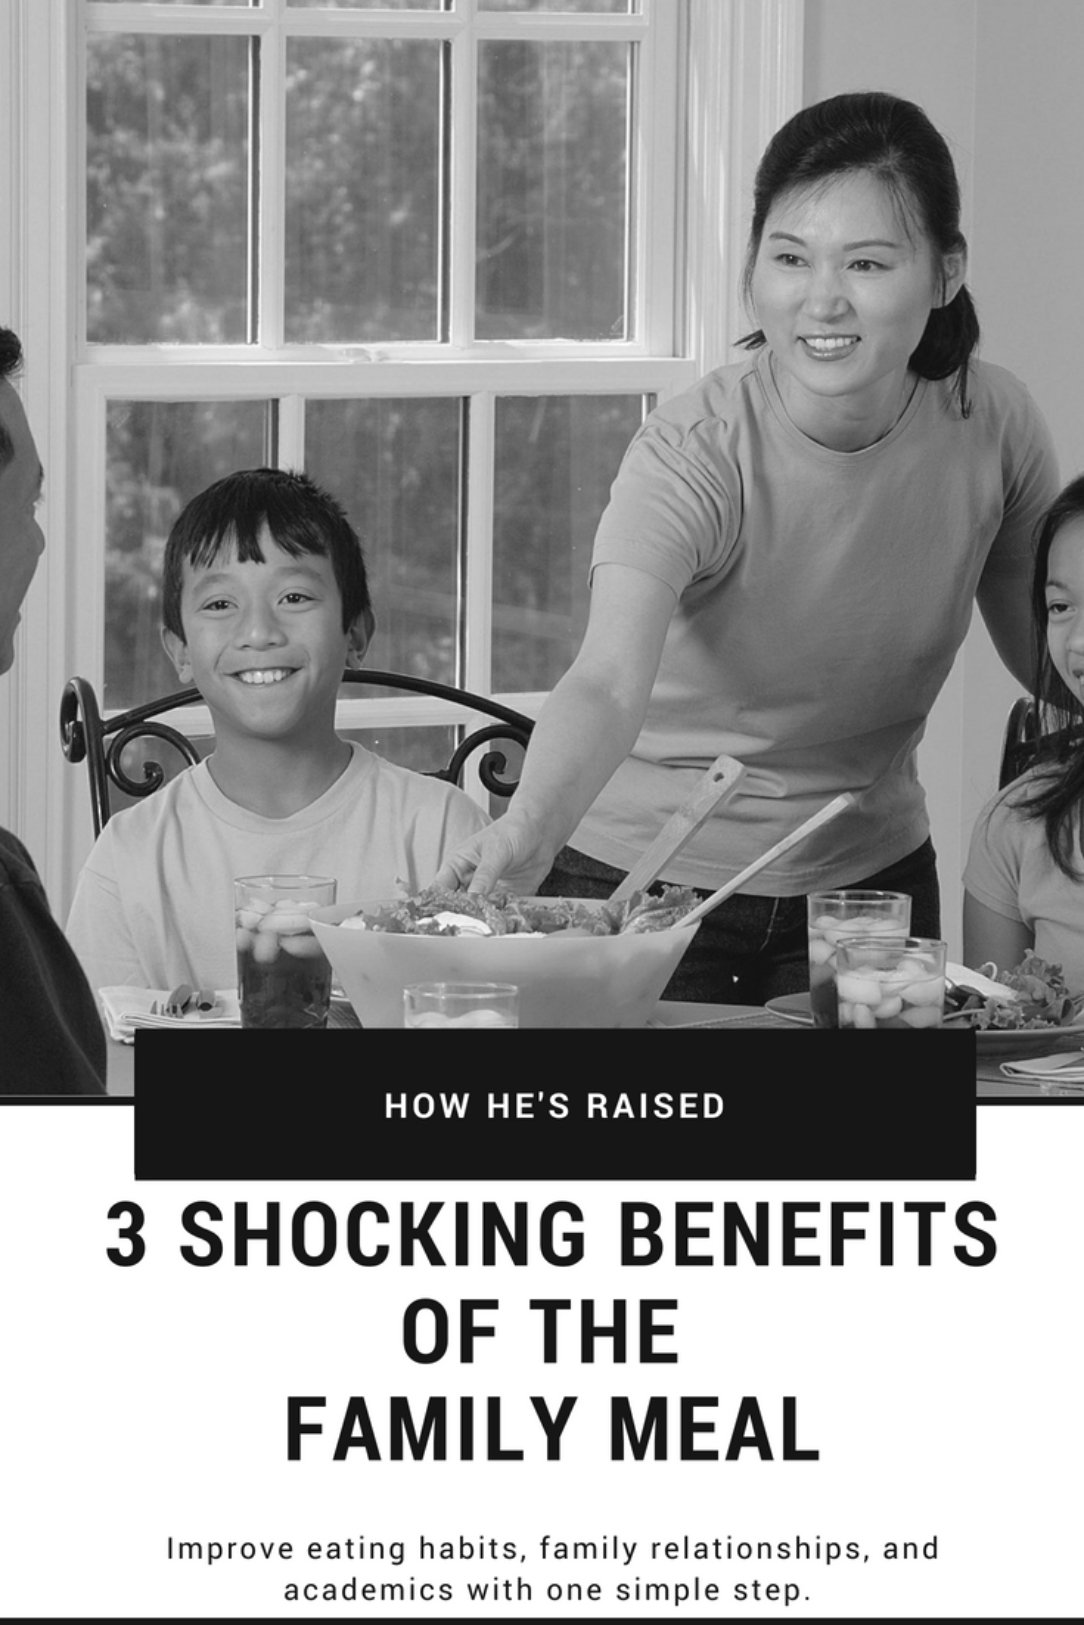 3 Shocking Benefits of the Family Meal